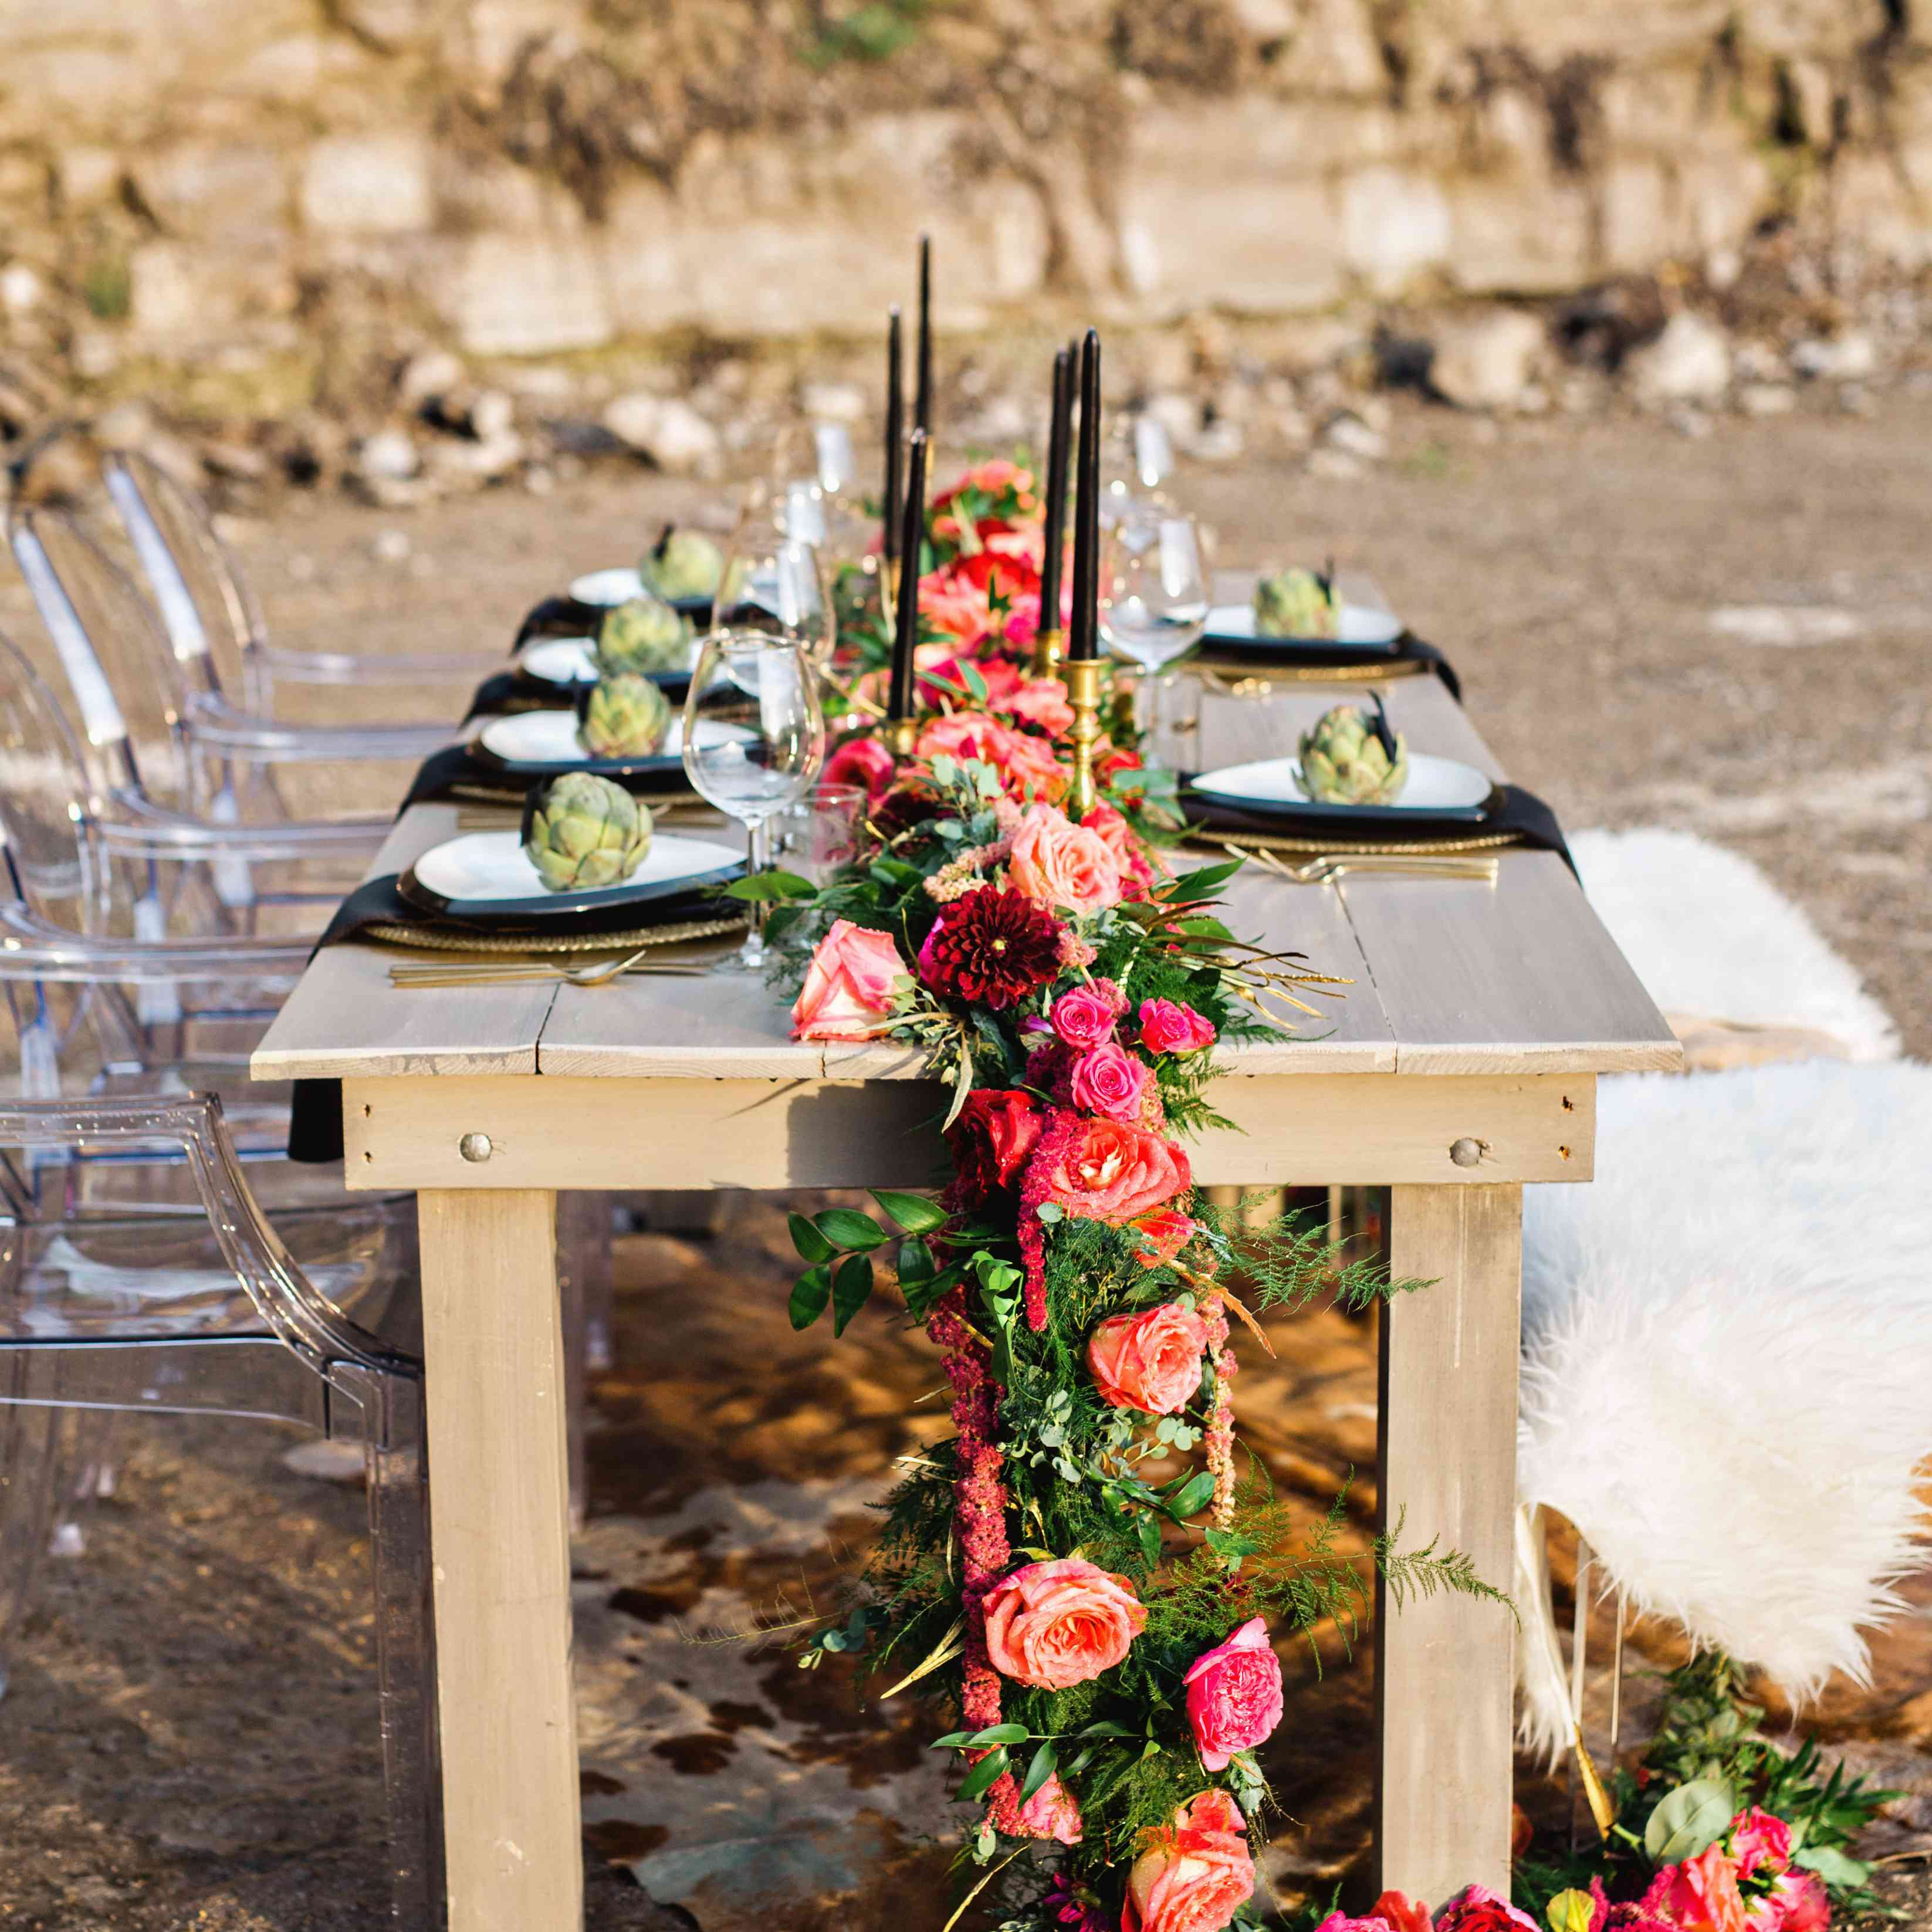 Garland of pink and red roses with black table accents